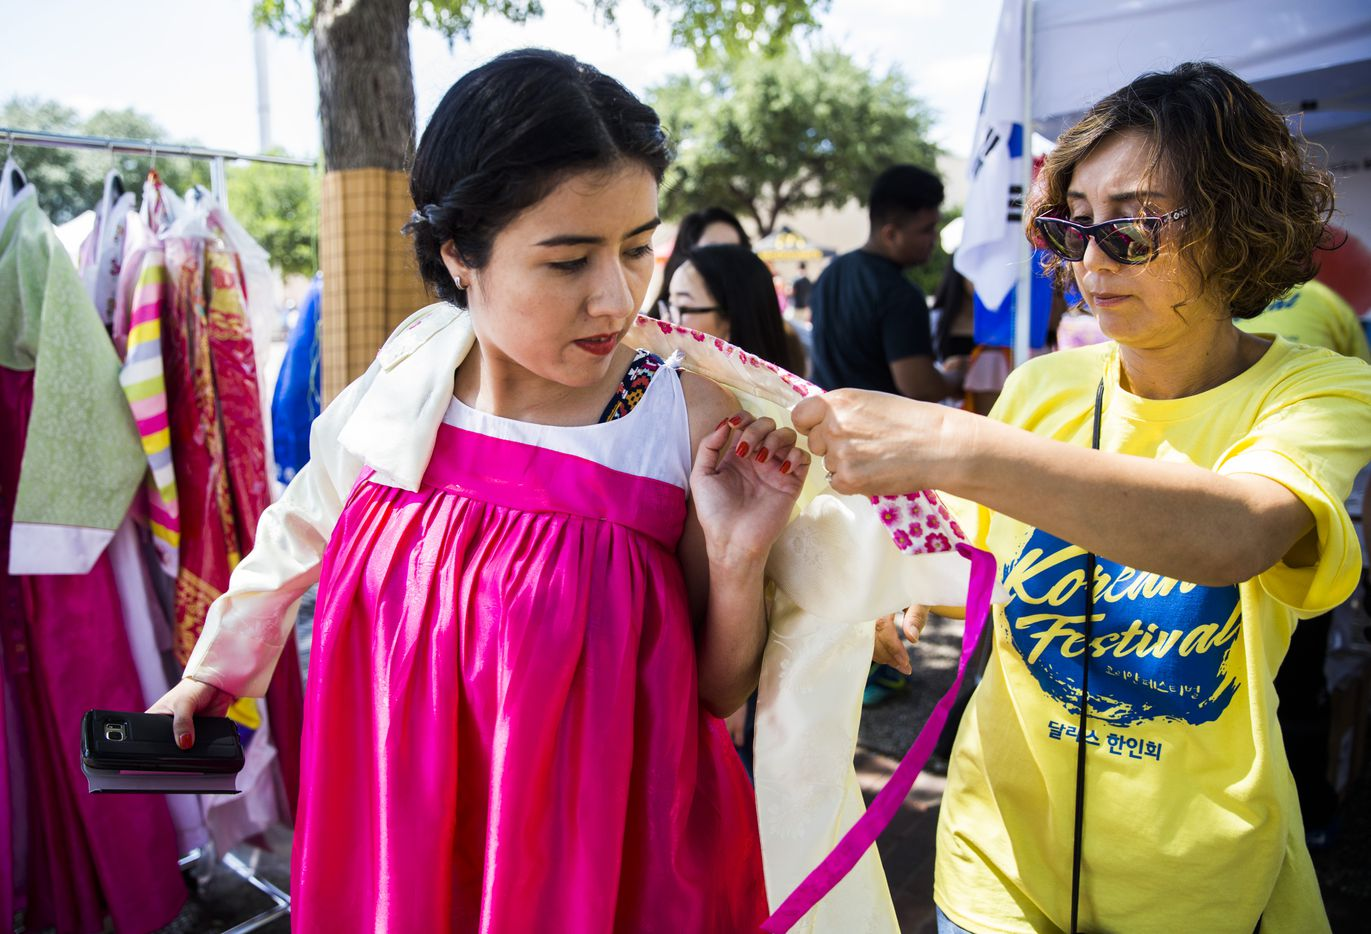 Mayra Herrera, left, tries on traditional Korean clothing with help from Myong Pak of The Korean Society of Dallas during the 27th Home Depot Asian Festival on Saturday, May 13, 2017 at Cotton Bowl Plaza in Dallas Fair Park.